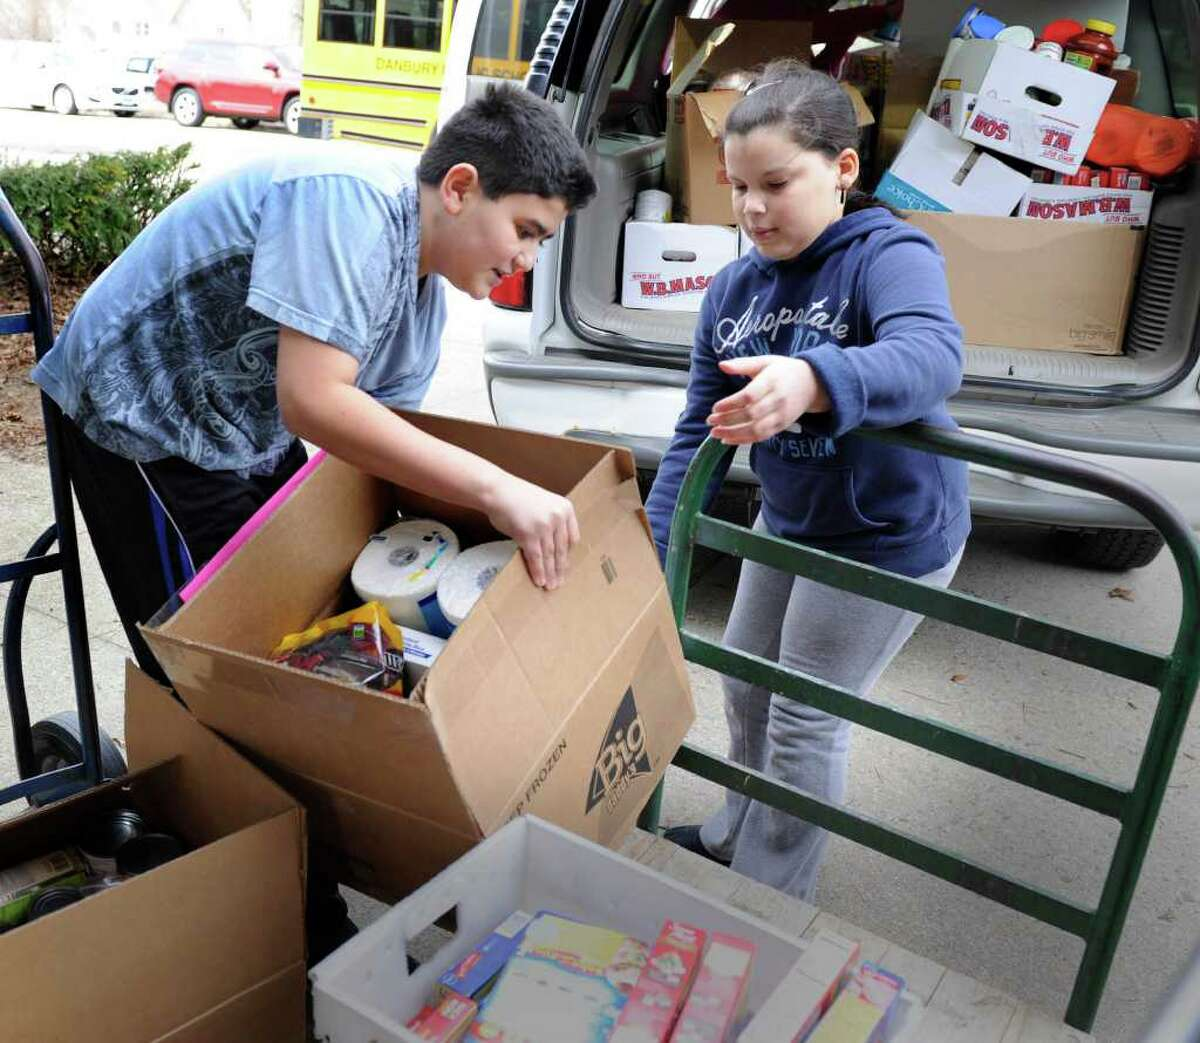 """Jarod Rodriguez, left, and Tais Nunez, both 10, help load a van with items to be donated to the Dorothy Day Hospitality House in Danbury. Shelter Rock School organized a a project called, """"Hearts United Against Hunger,"""" as a way of recognizing its 100th day of school by giving back to the community. Photo taken Wednesday, Feb. 22, 2012."""